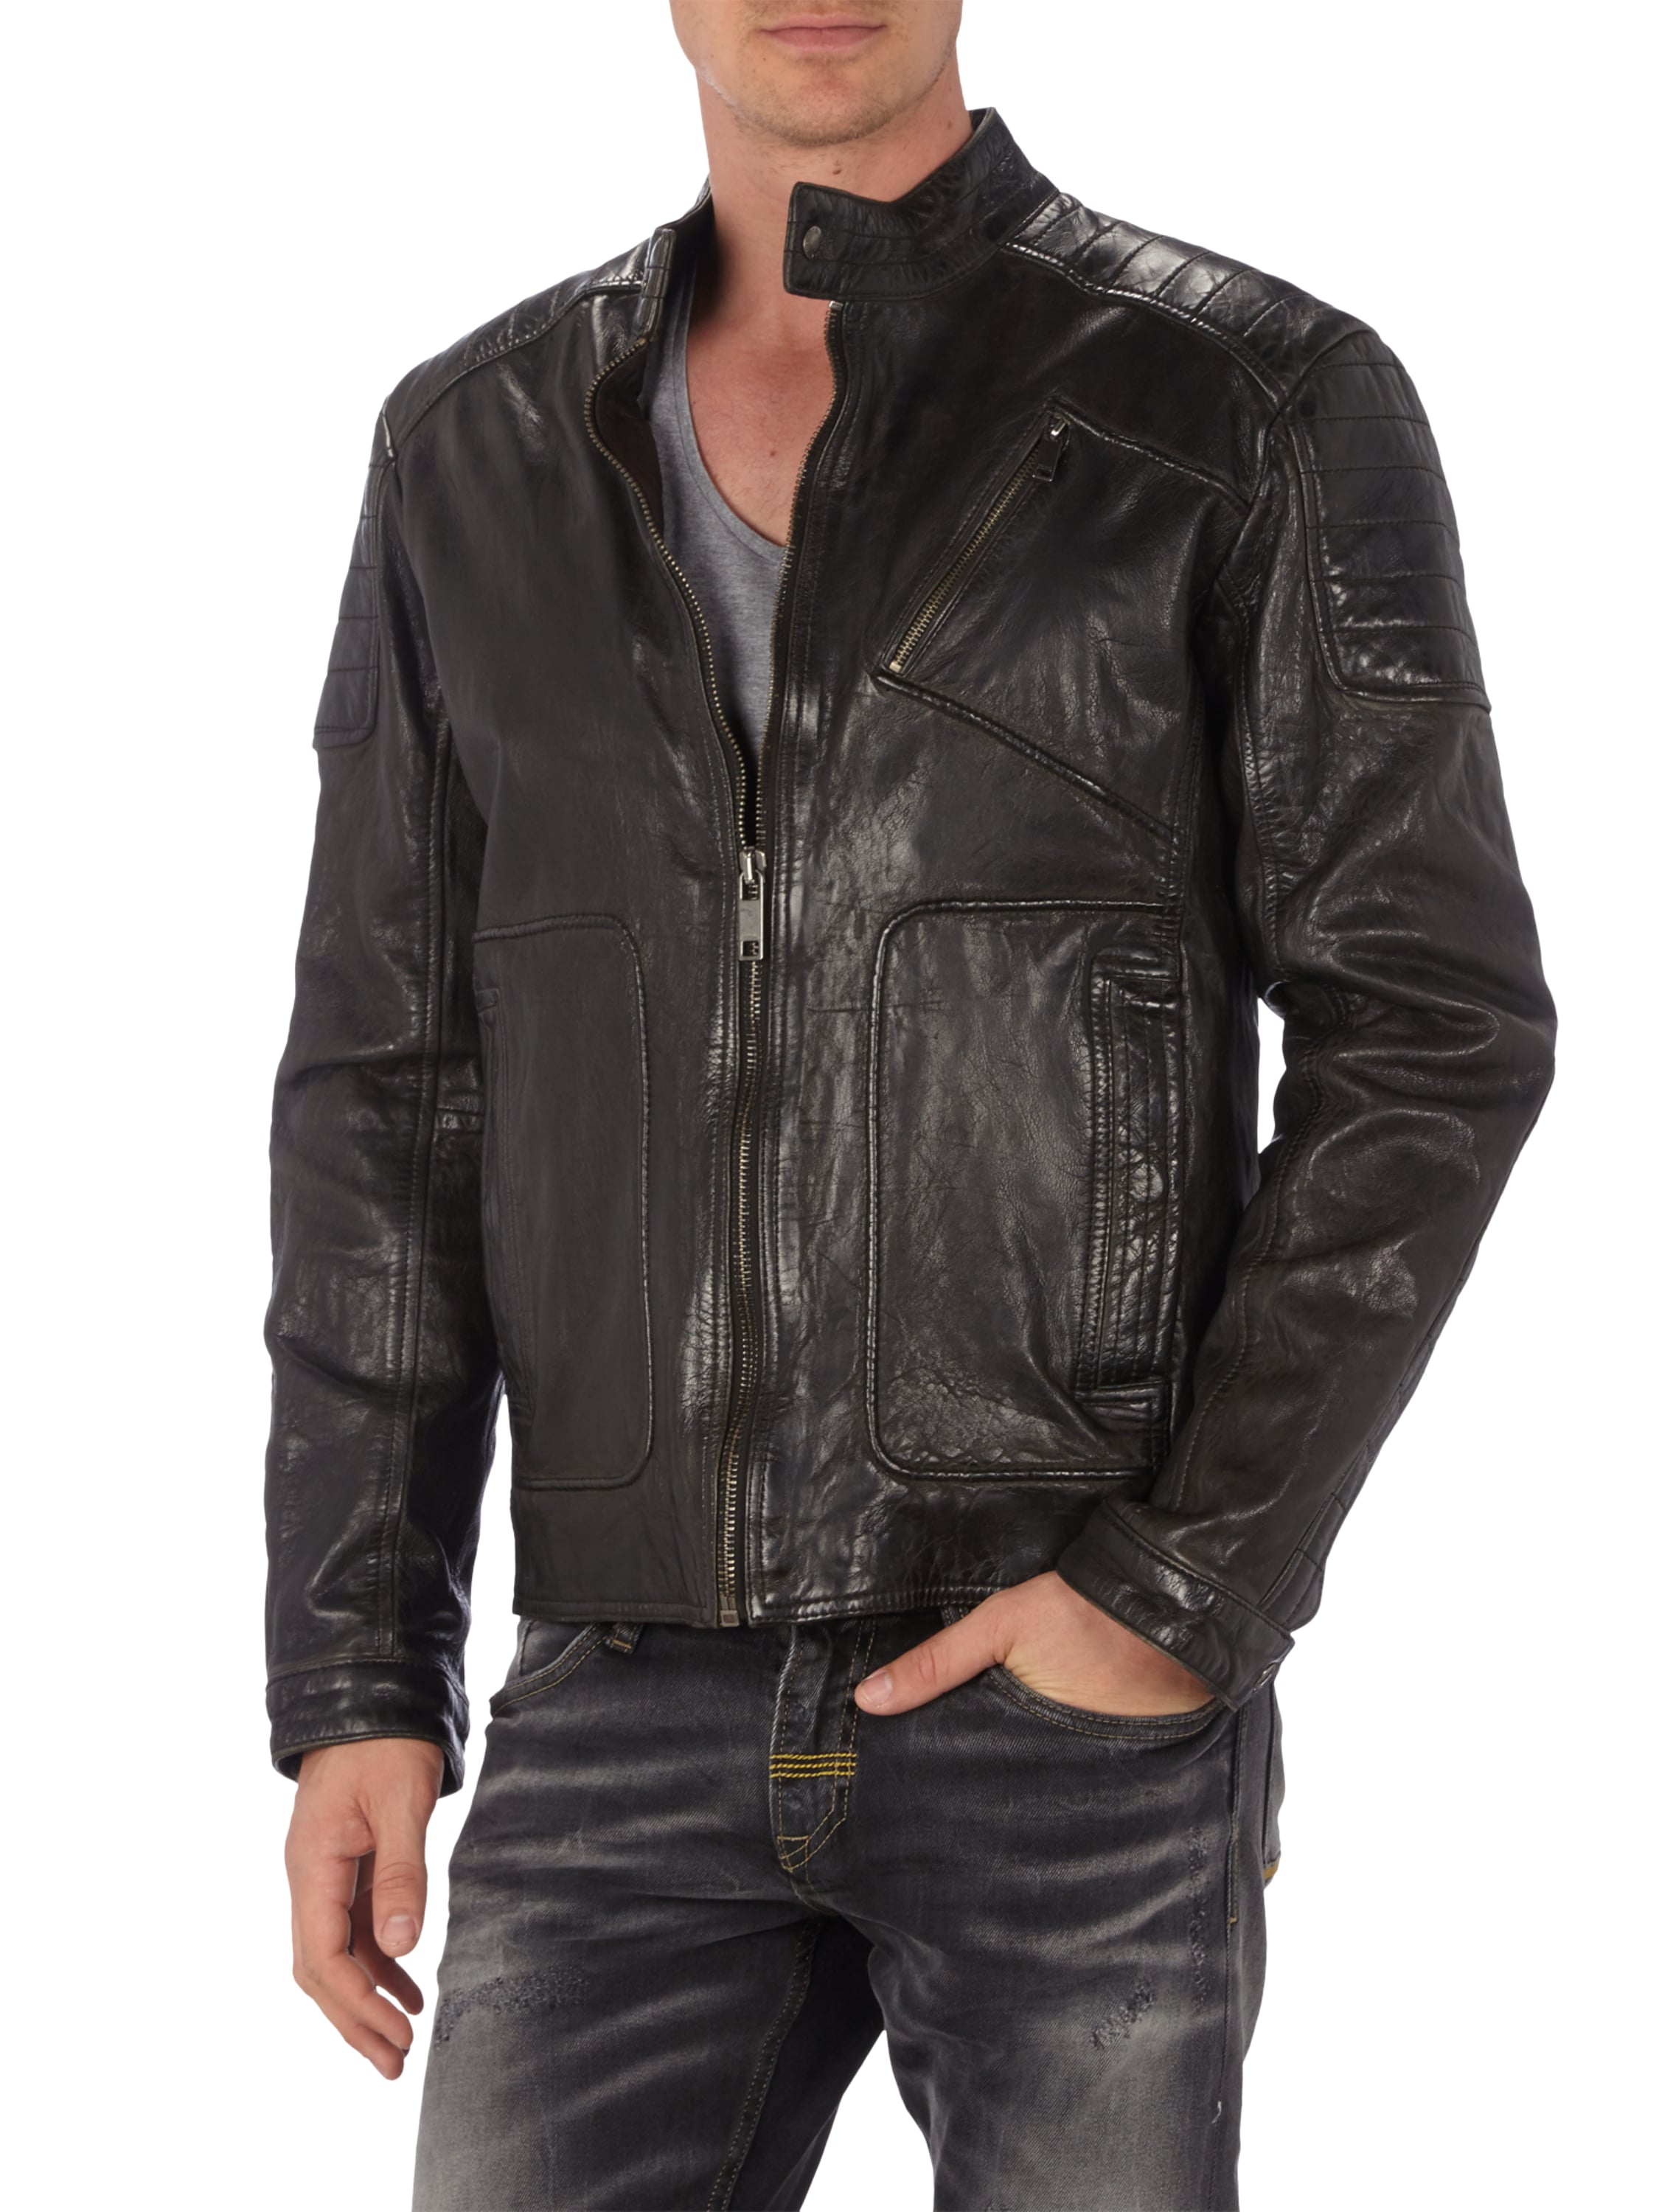 mcneal lederjacke im biker look in grau schwarz online kaufen 9307859 p c online shop. Black Bedroom Furniture Sets. Home Design Ideas